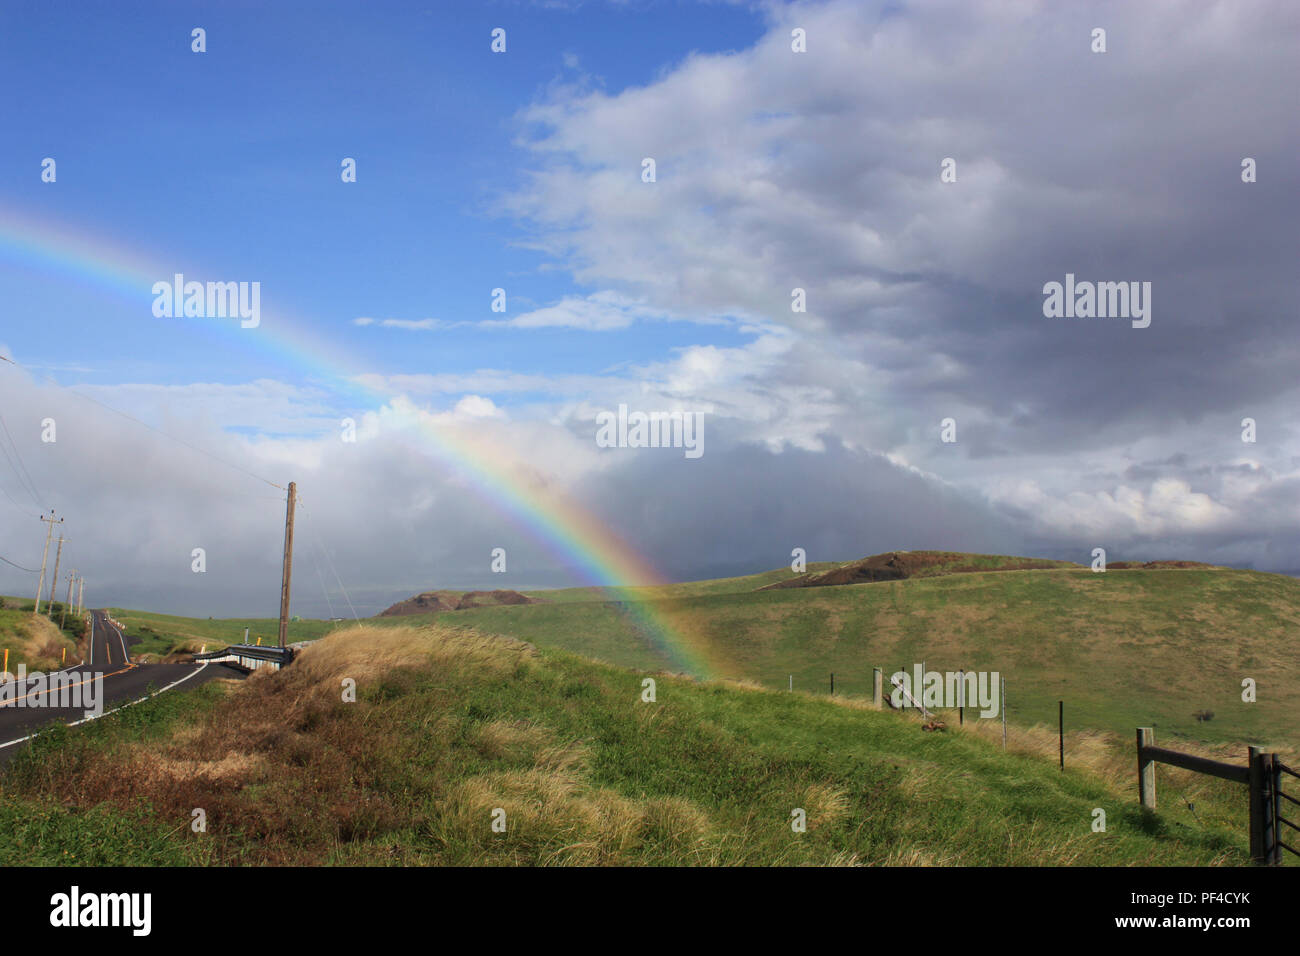 The end of the rainbow, dissolving into a grassy field next to the Kohala Mountain Road in North Kohala, Hawaii, USA - Stock Image